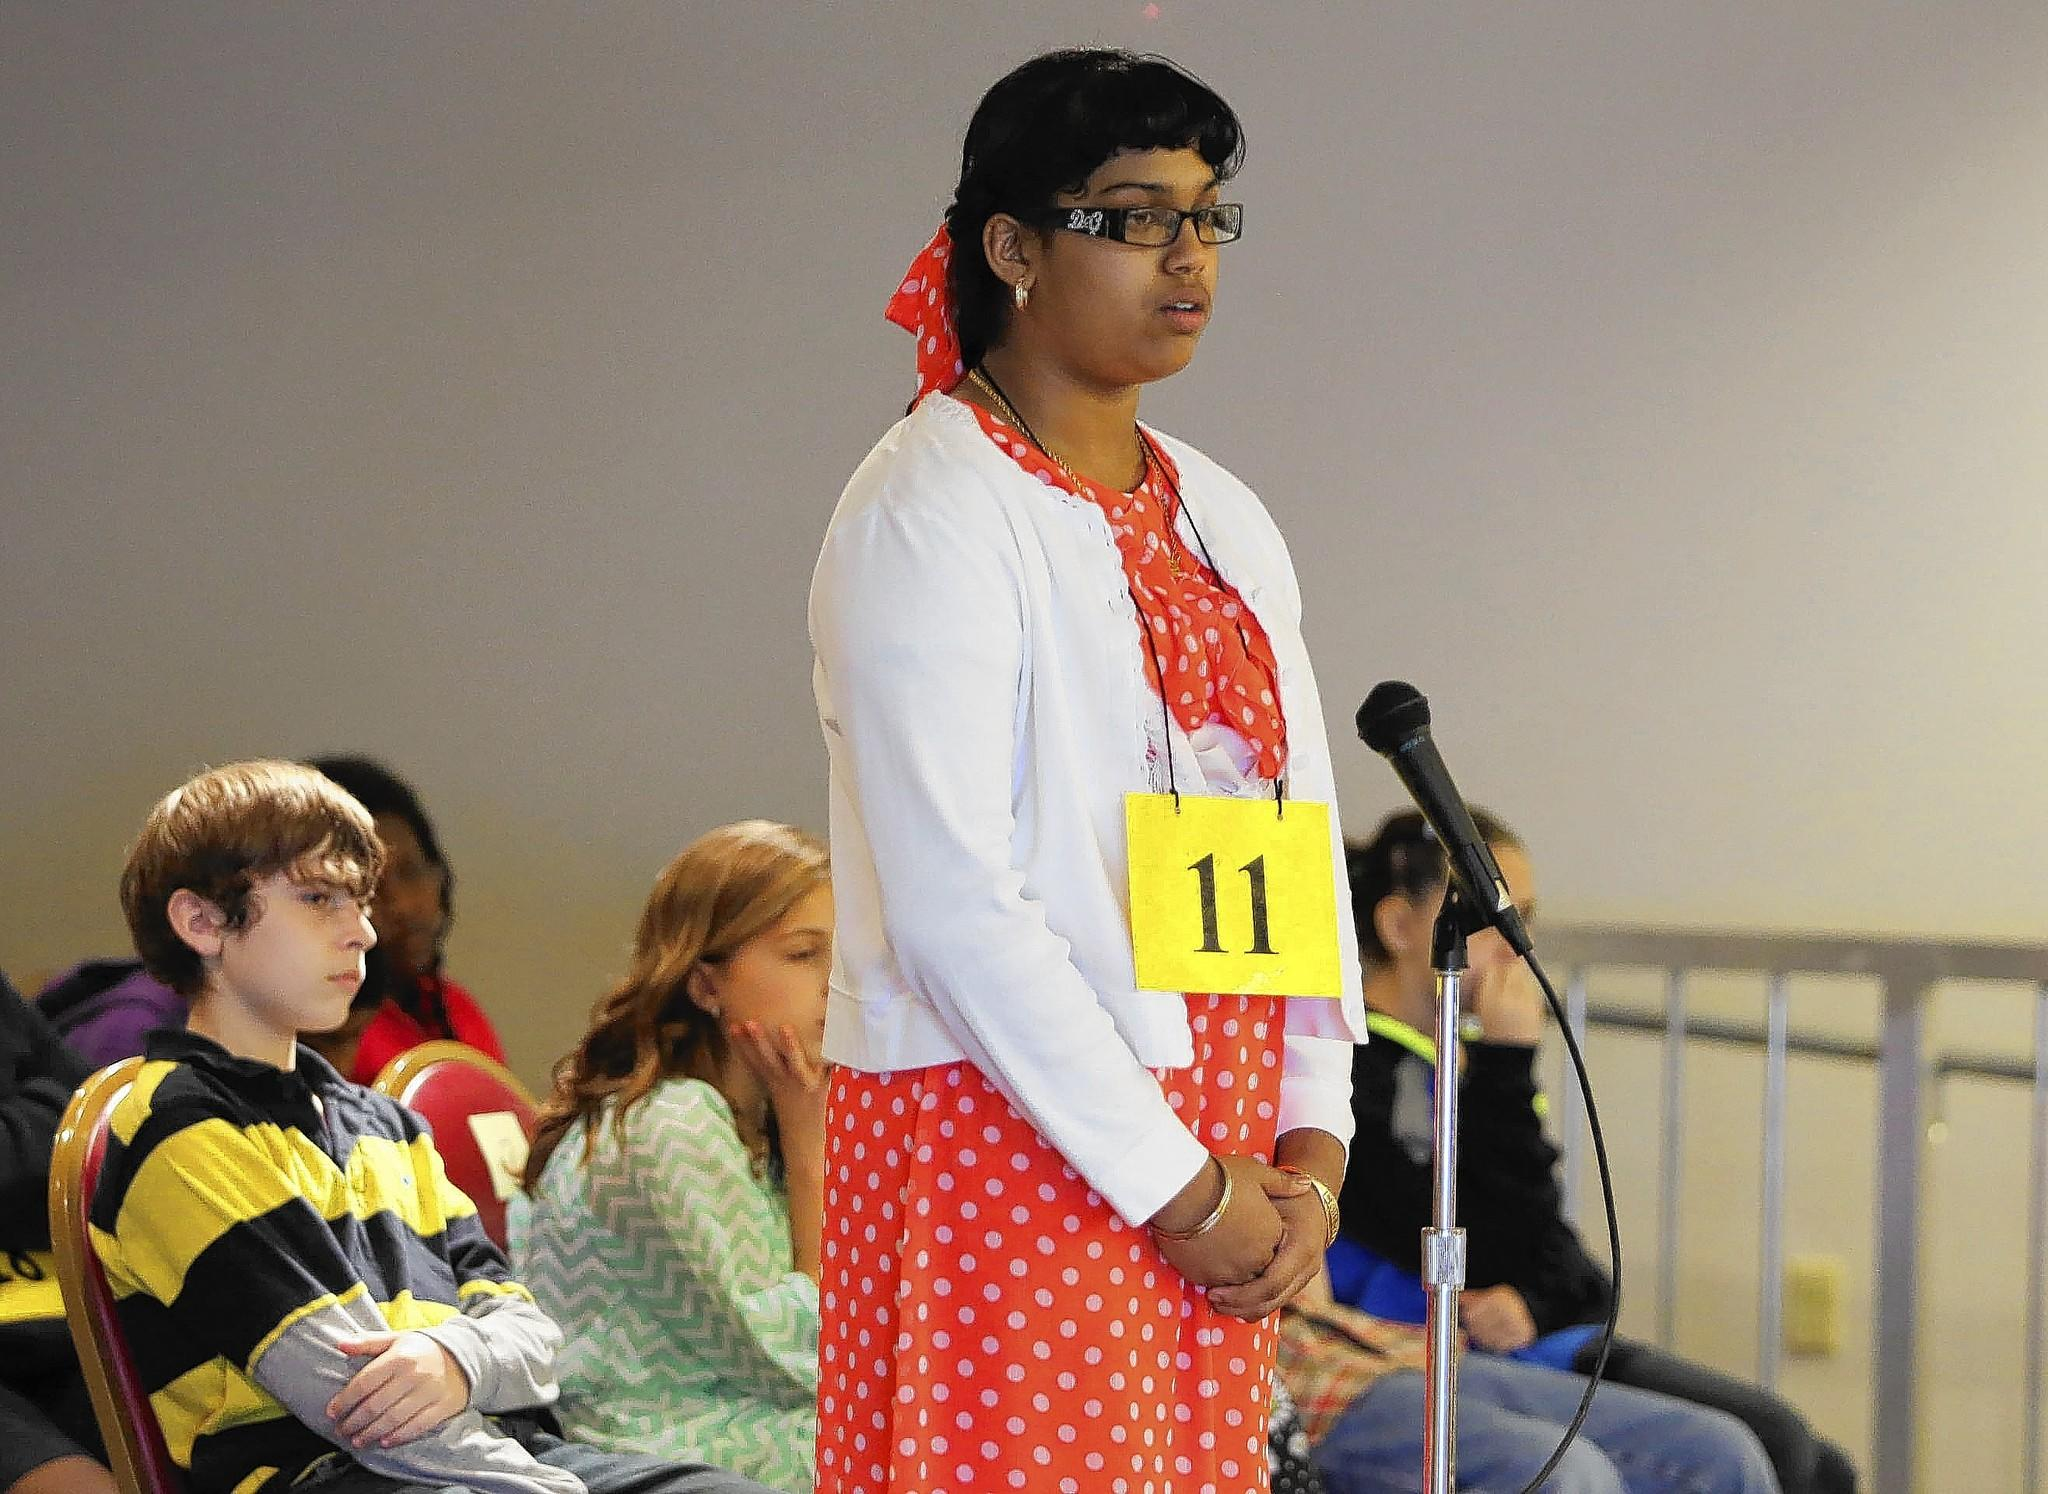 Crystal Harris of Umatilla Middle School is the winner of the 2014 Lake County Spelling Bee. The City of Eustis hosted the event on Thursday, March 6, 2014 at the Community Center. (Tom Benitez/OrlandoSentinel)